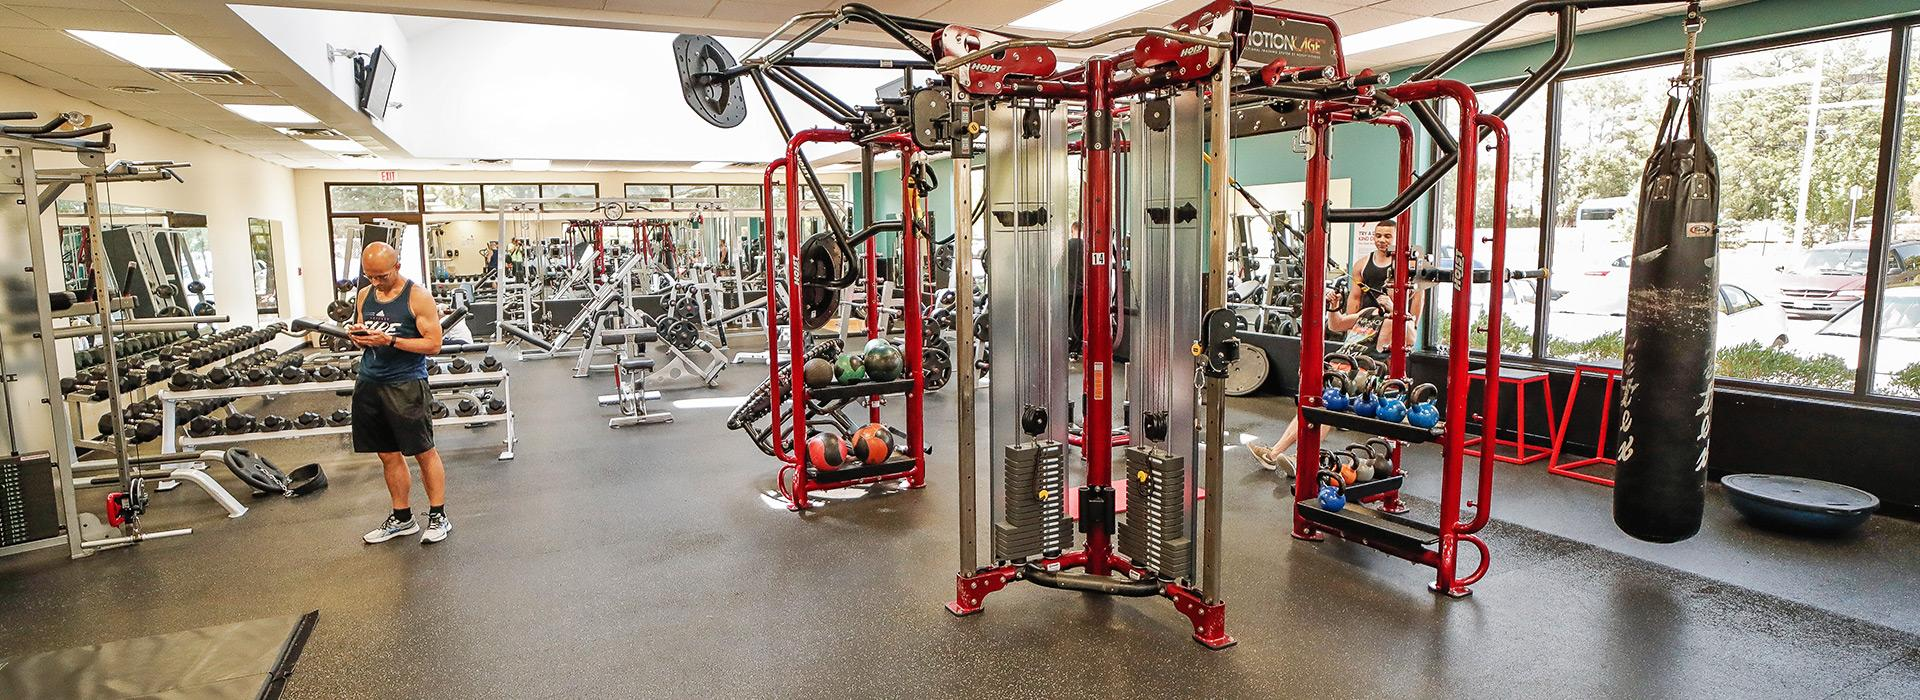 motion cage and weight room